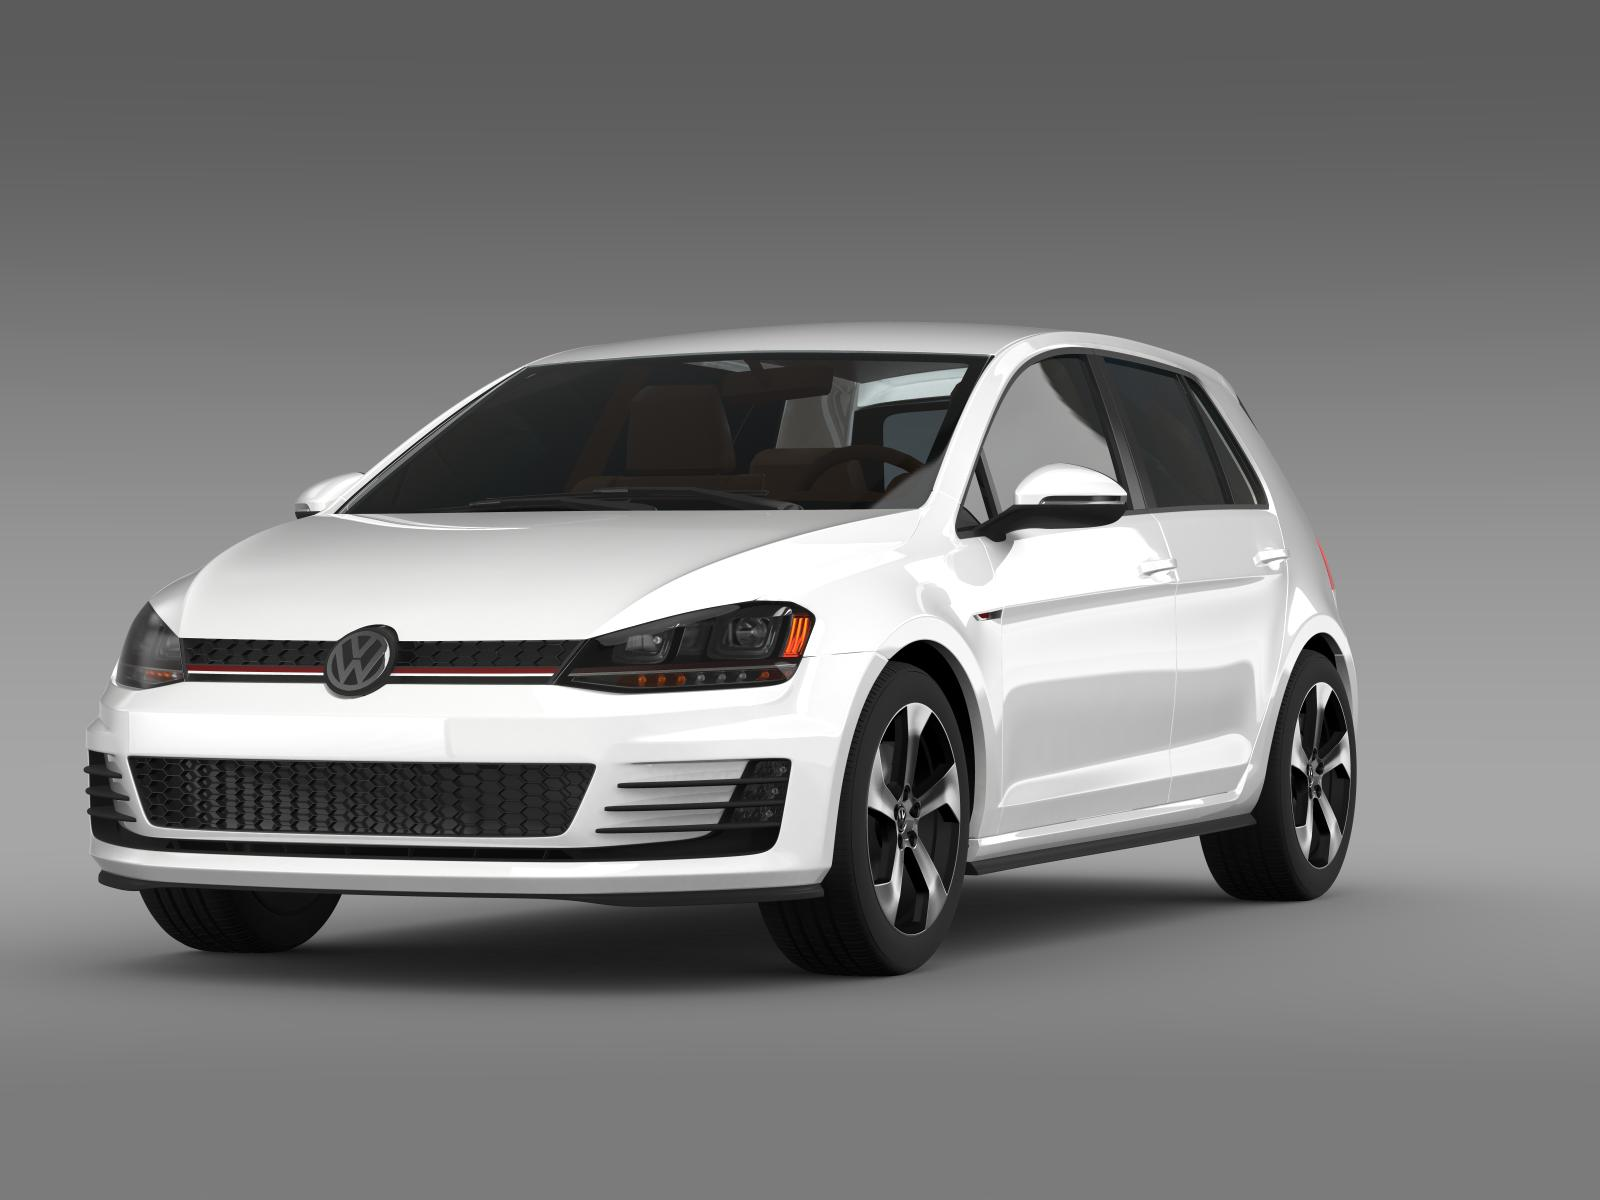 volkswagen golf gti 5 door 2015 3d model. Black Bedroom Furniture Sets. Home Design Ideas